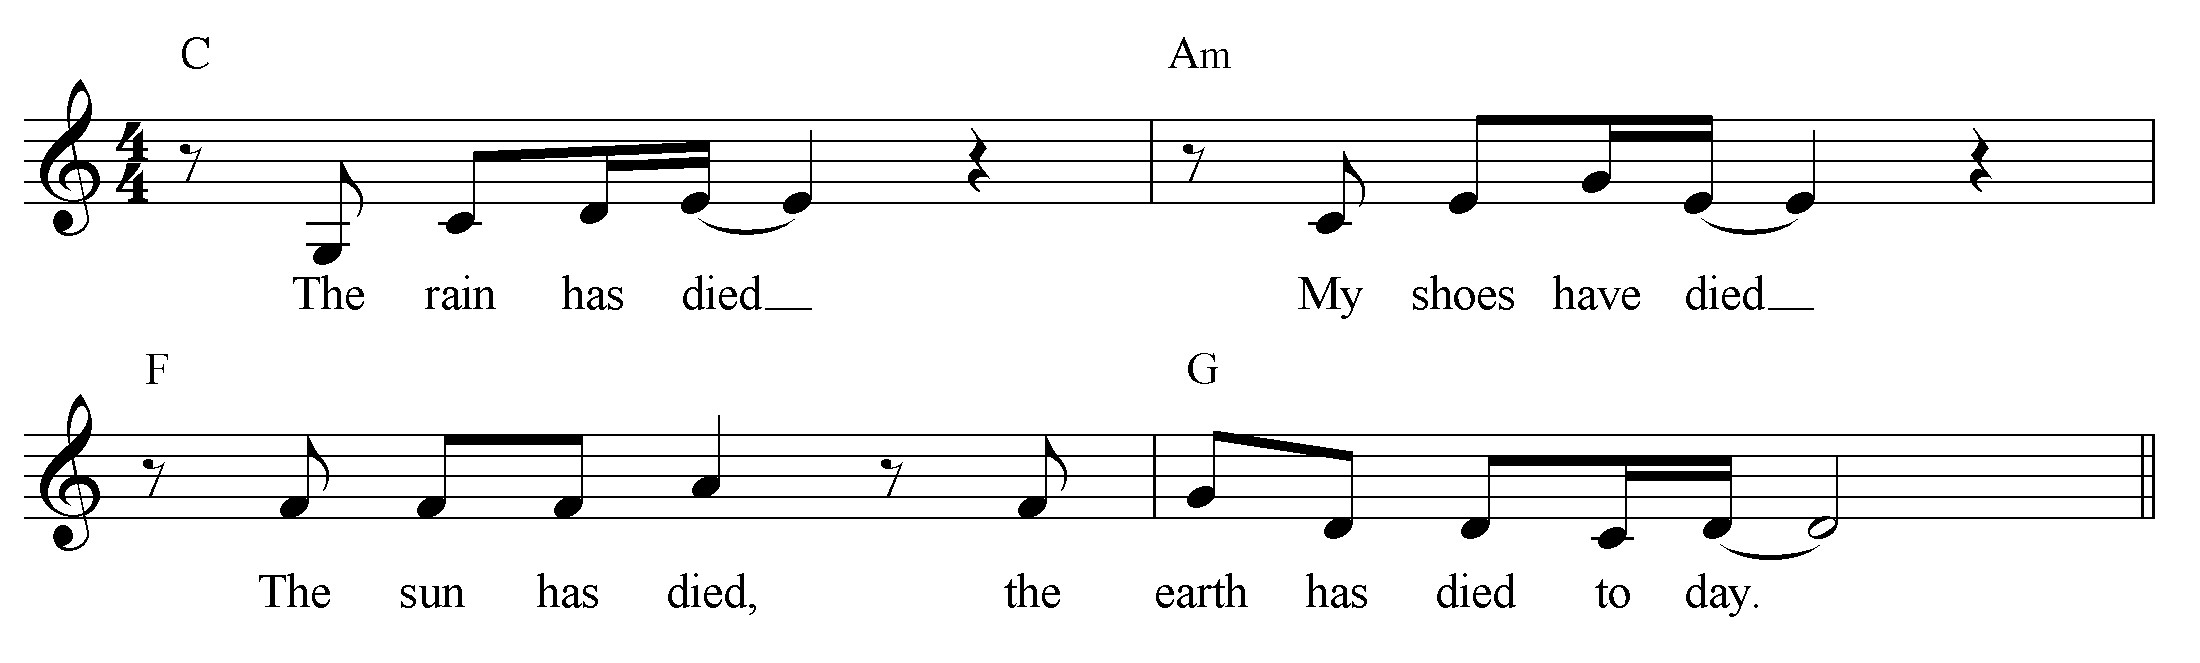 21. Example based on Rosen poem